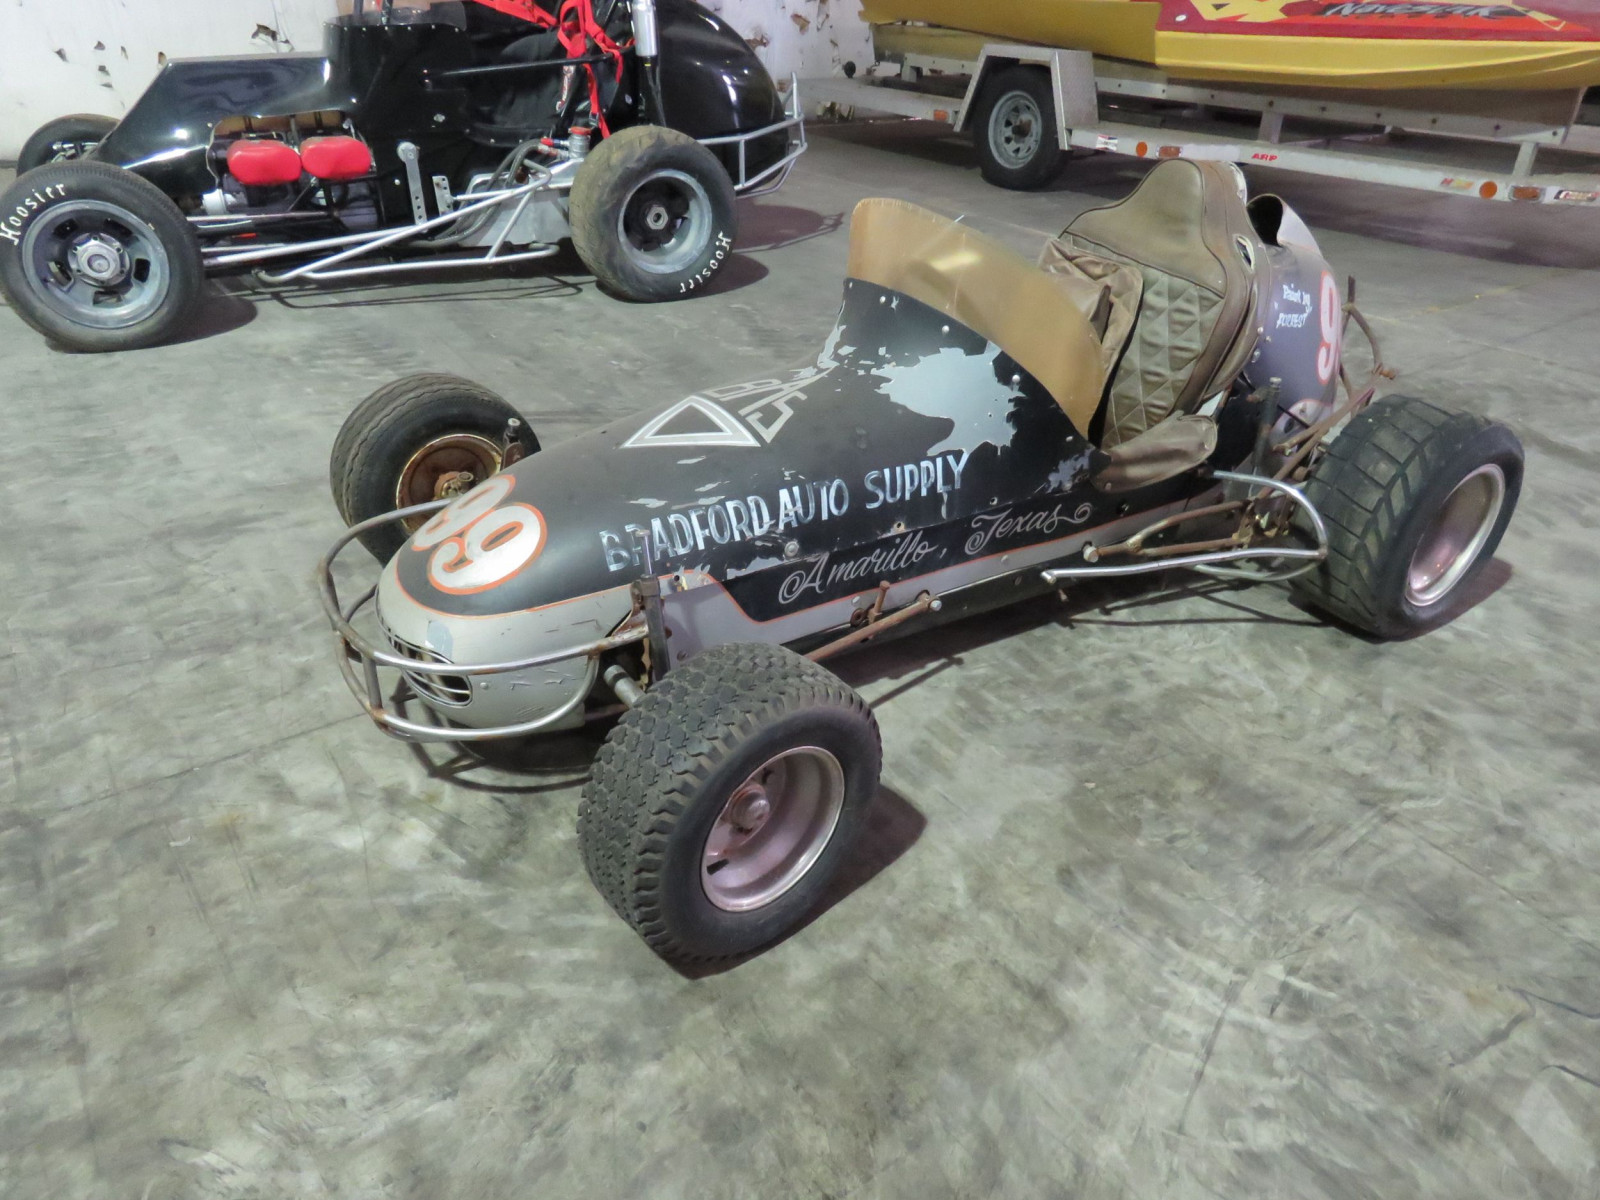 Vintage  1/2 scale Midget Sprint Race Car - Image 2